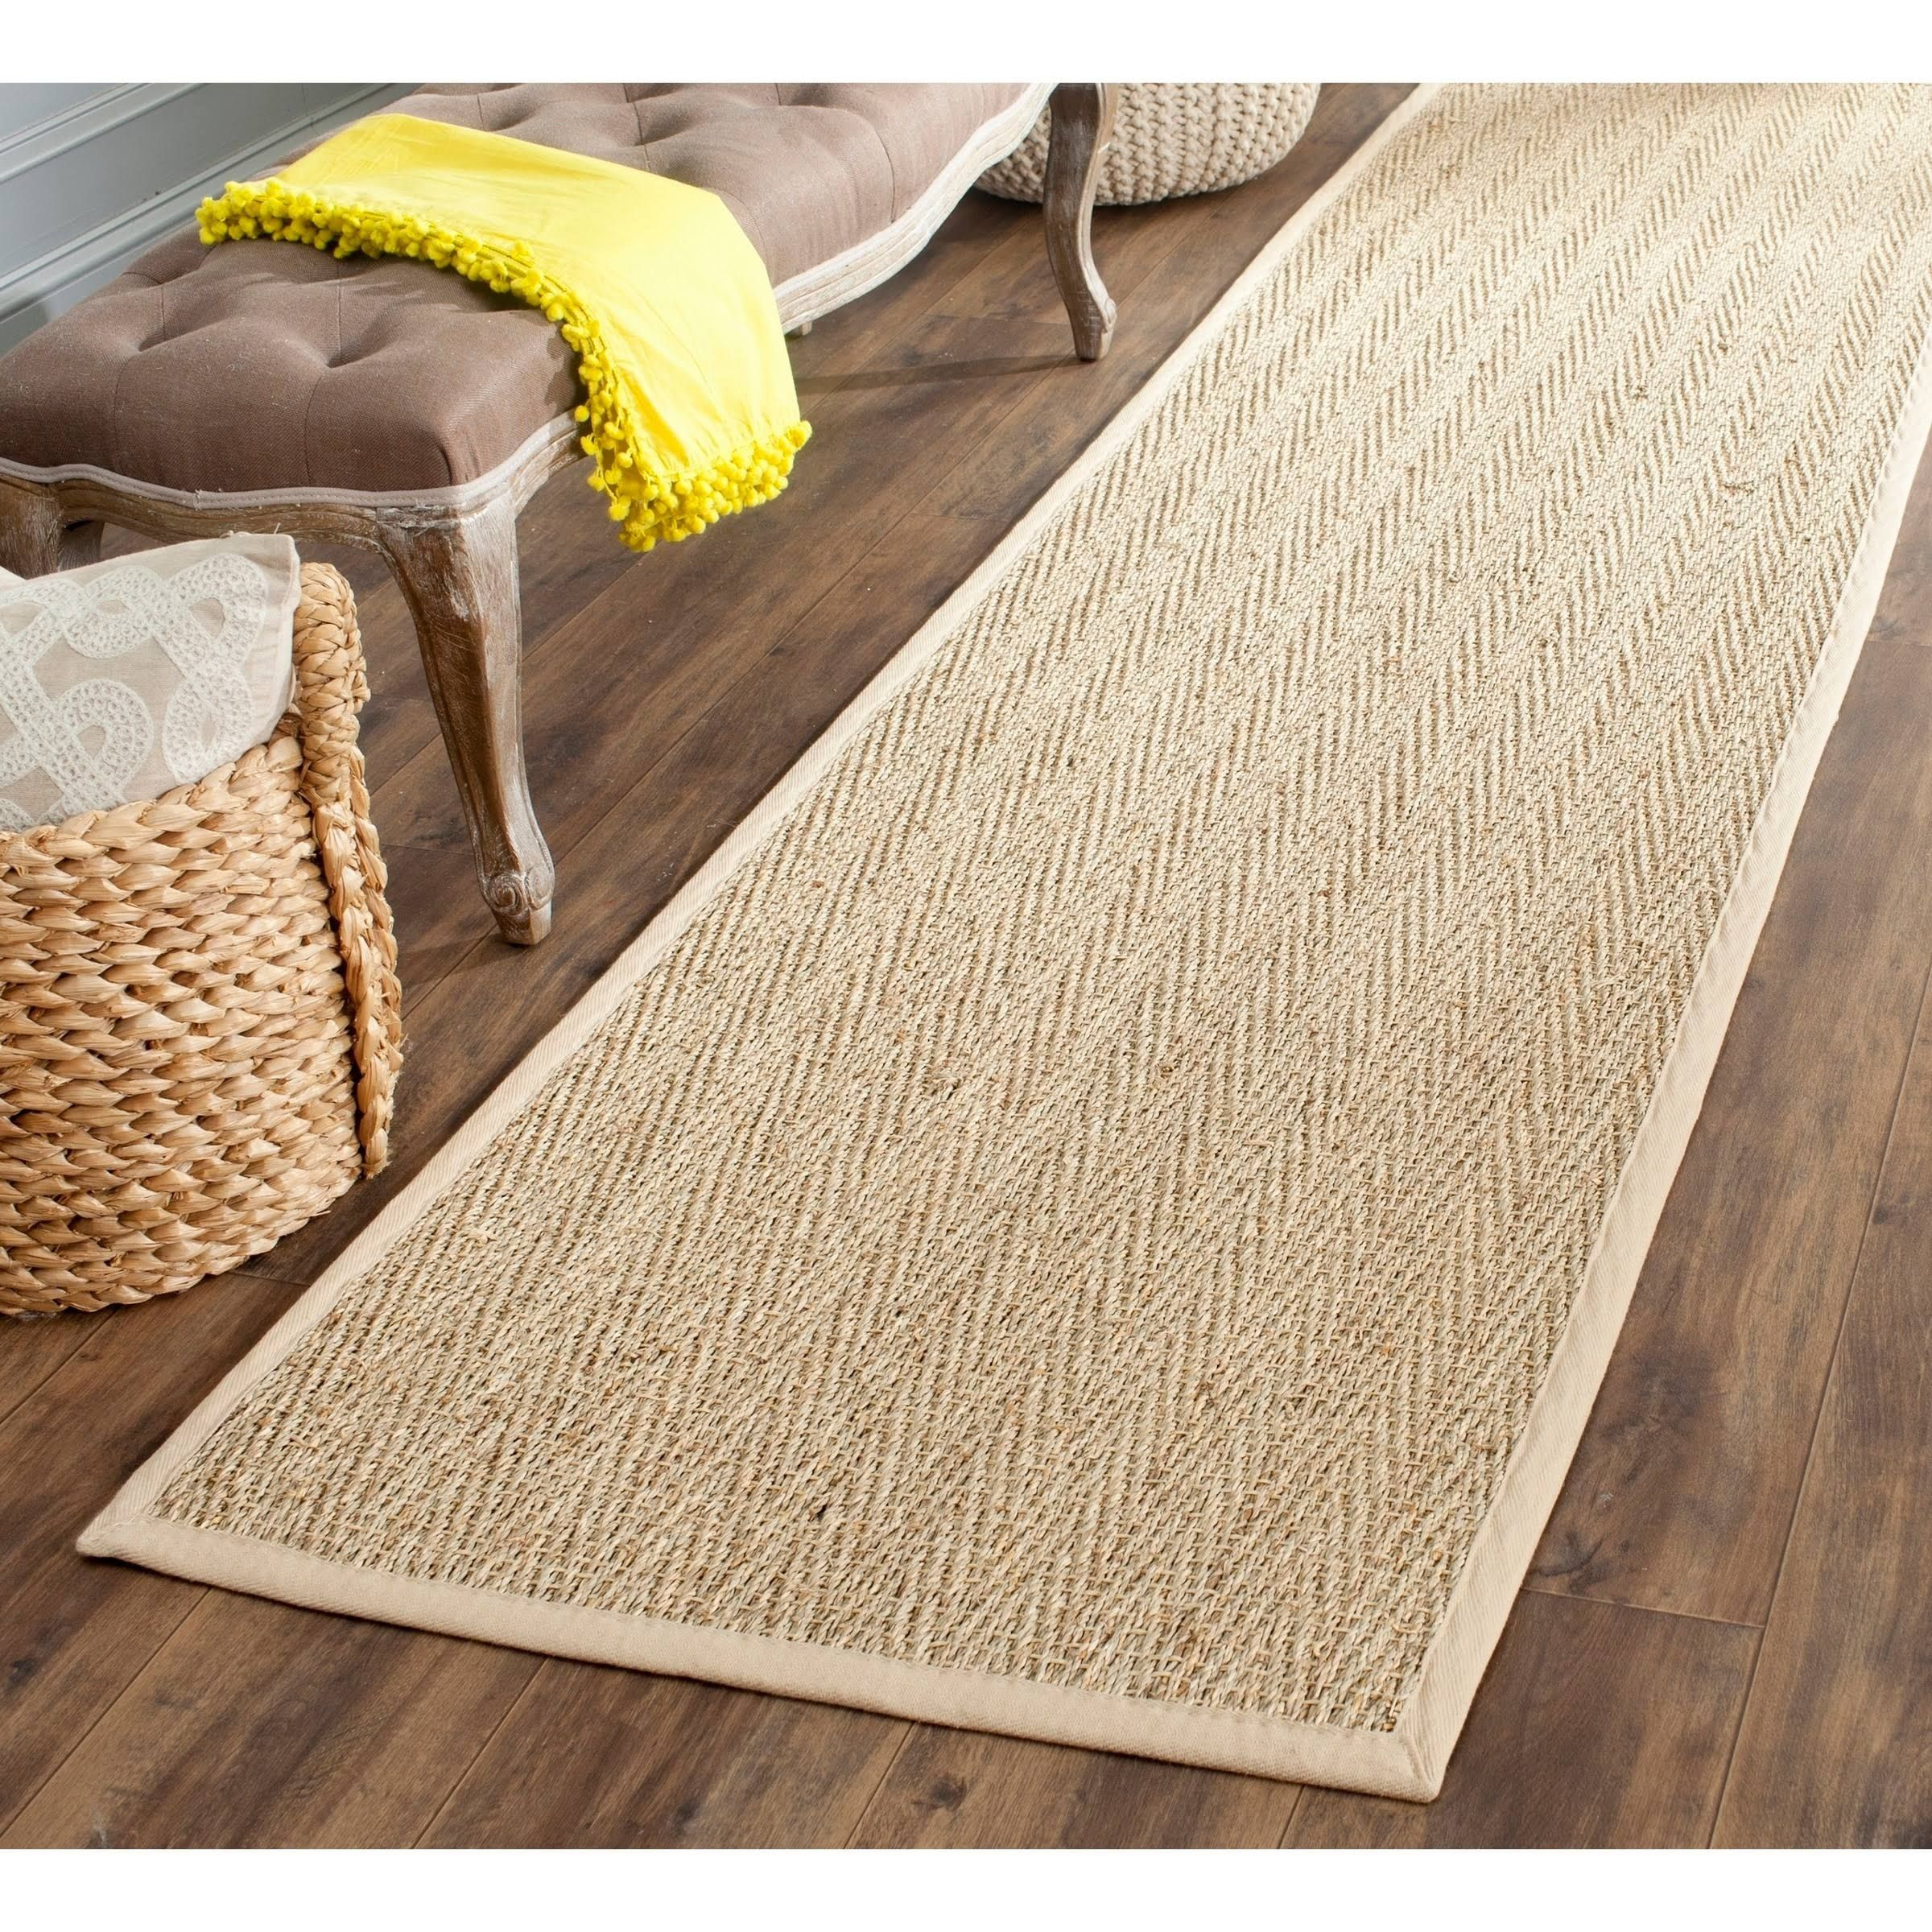 Burlap Stair Runner   Google Search